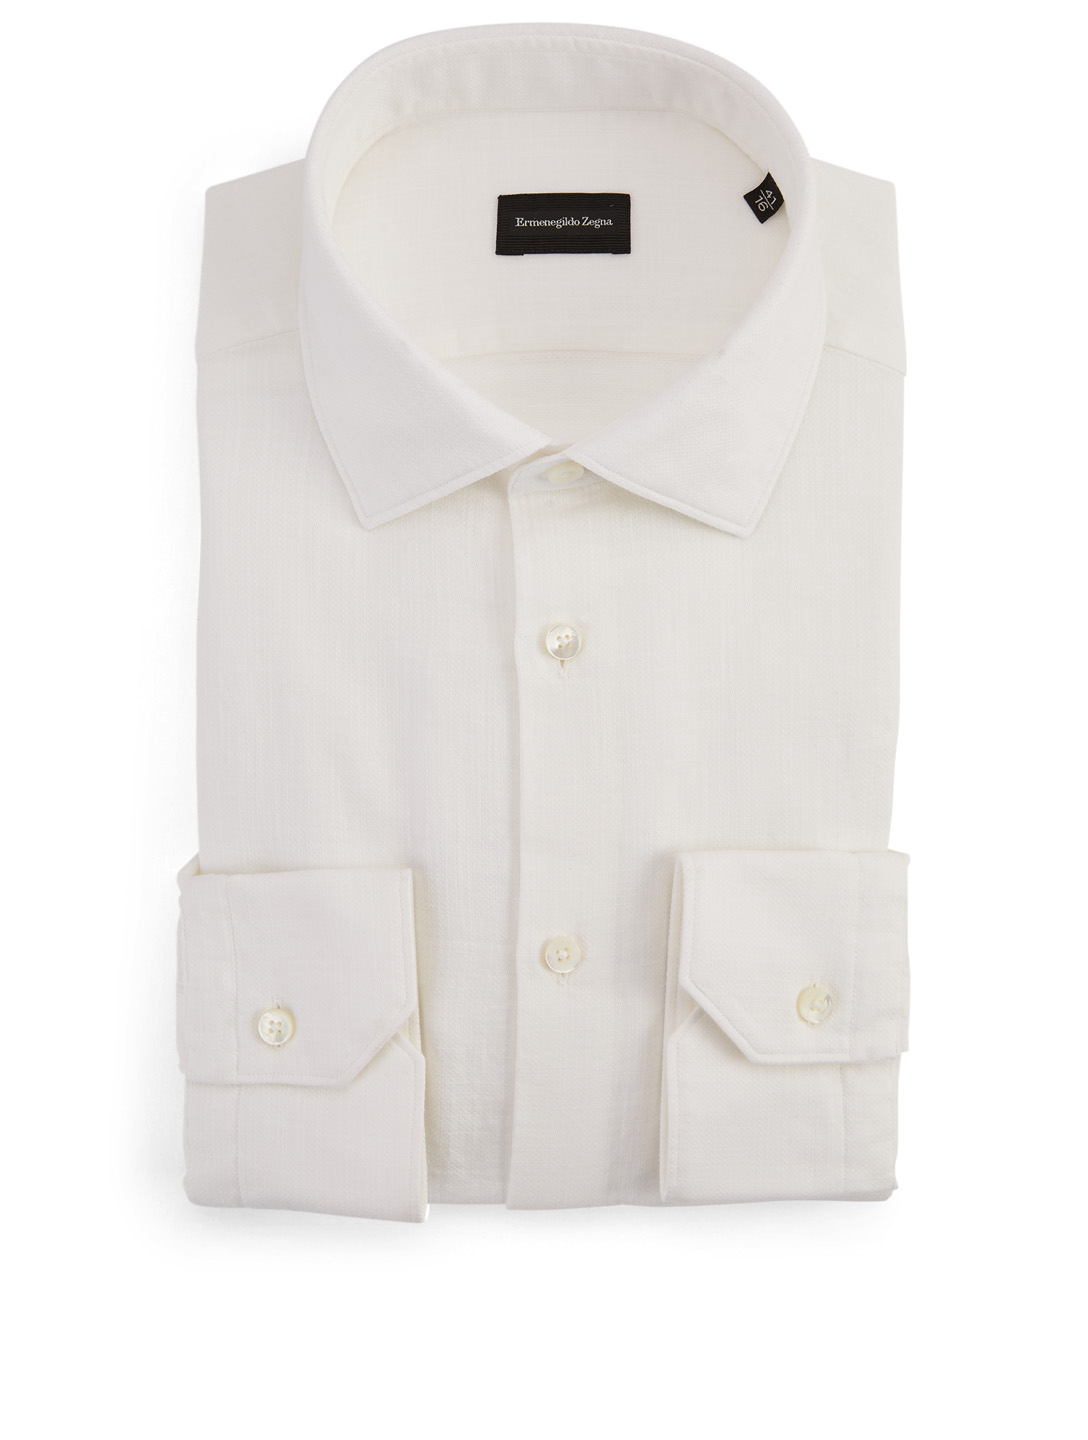 ERMENEGILDO ZEGNA Dress Shirt Men's White